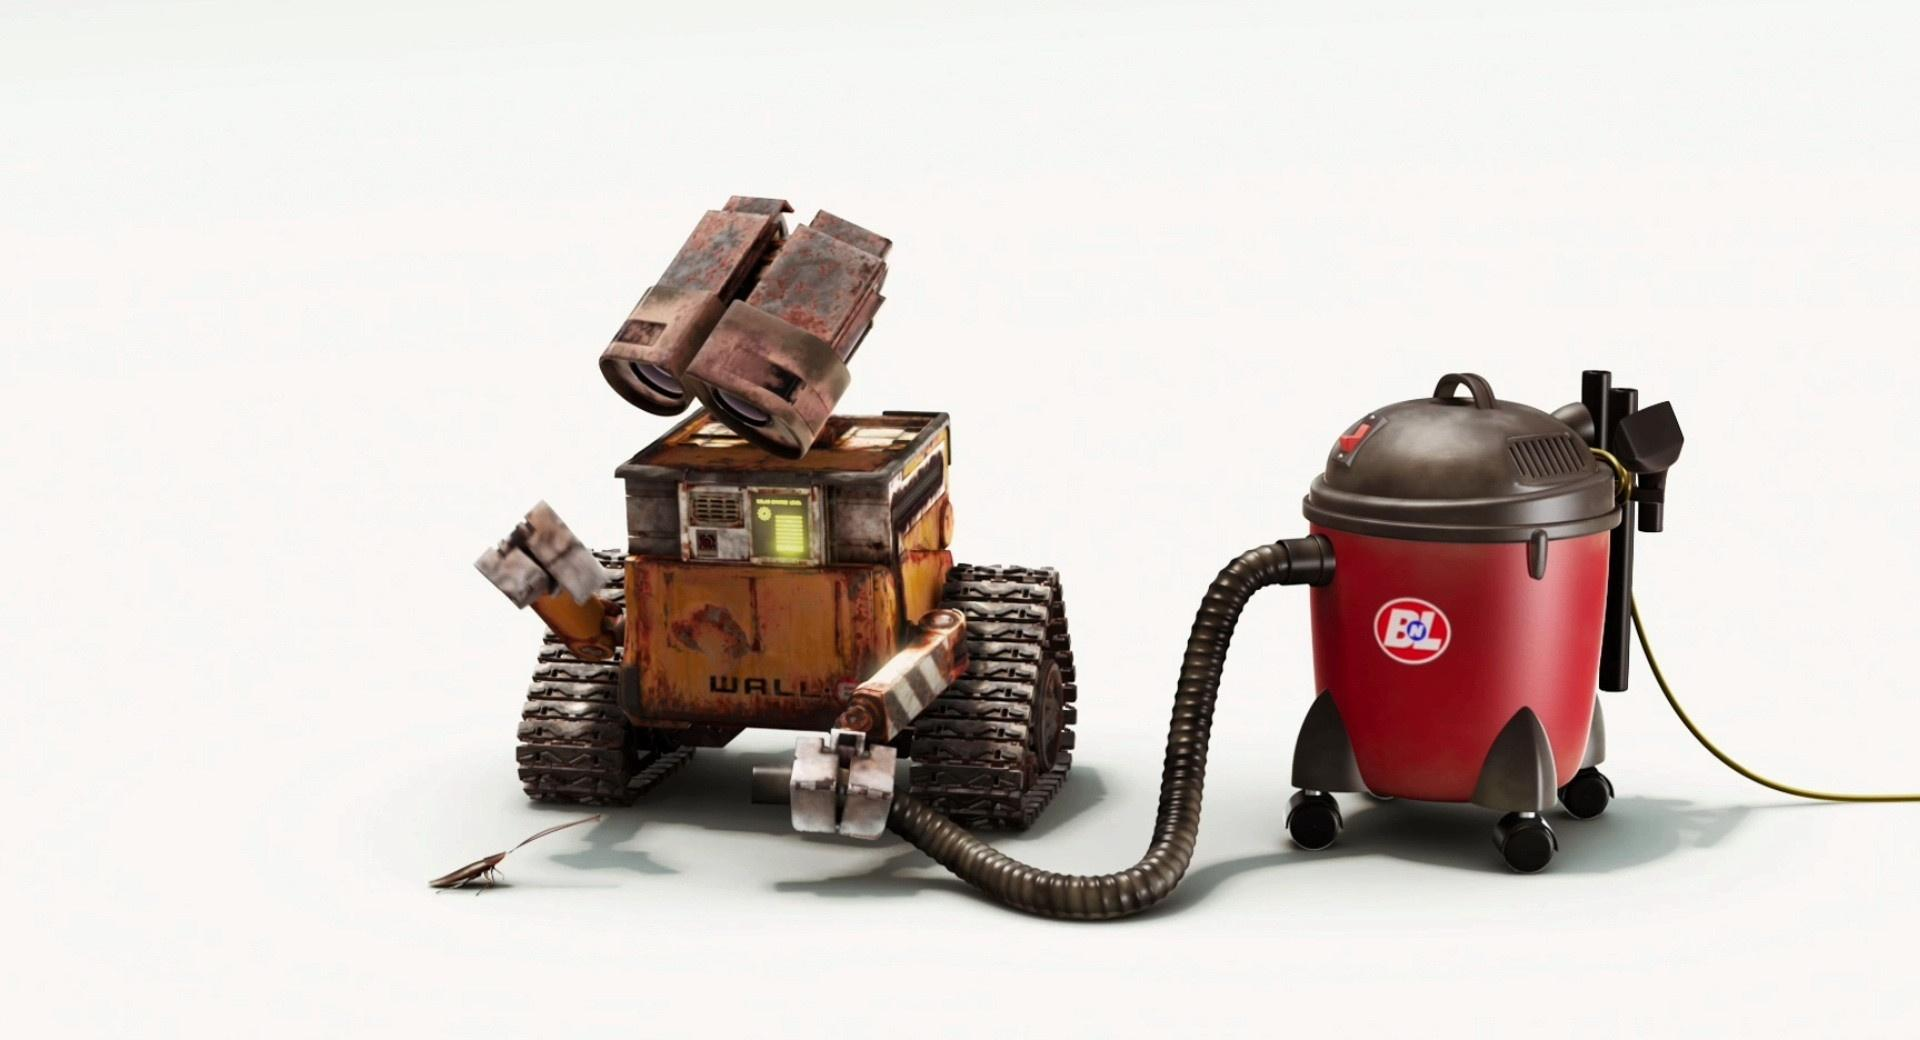 Hard Working Robot wallpapers HD quality